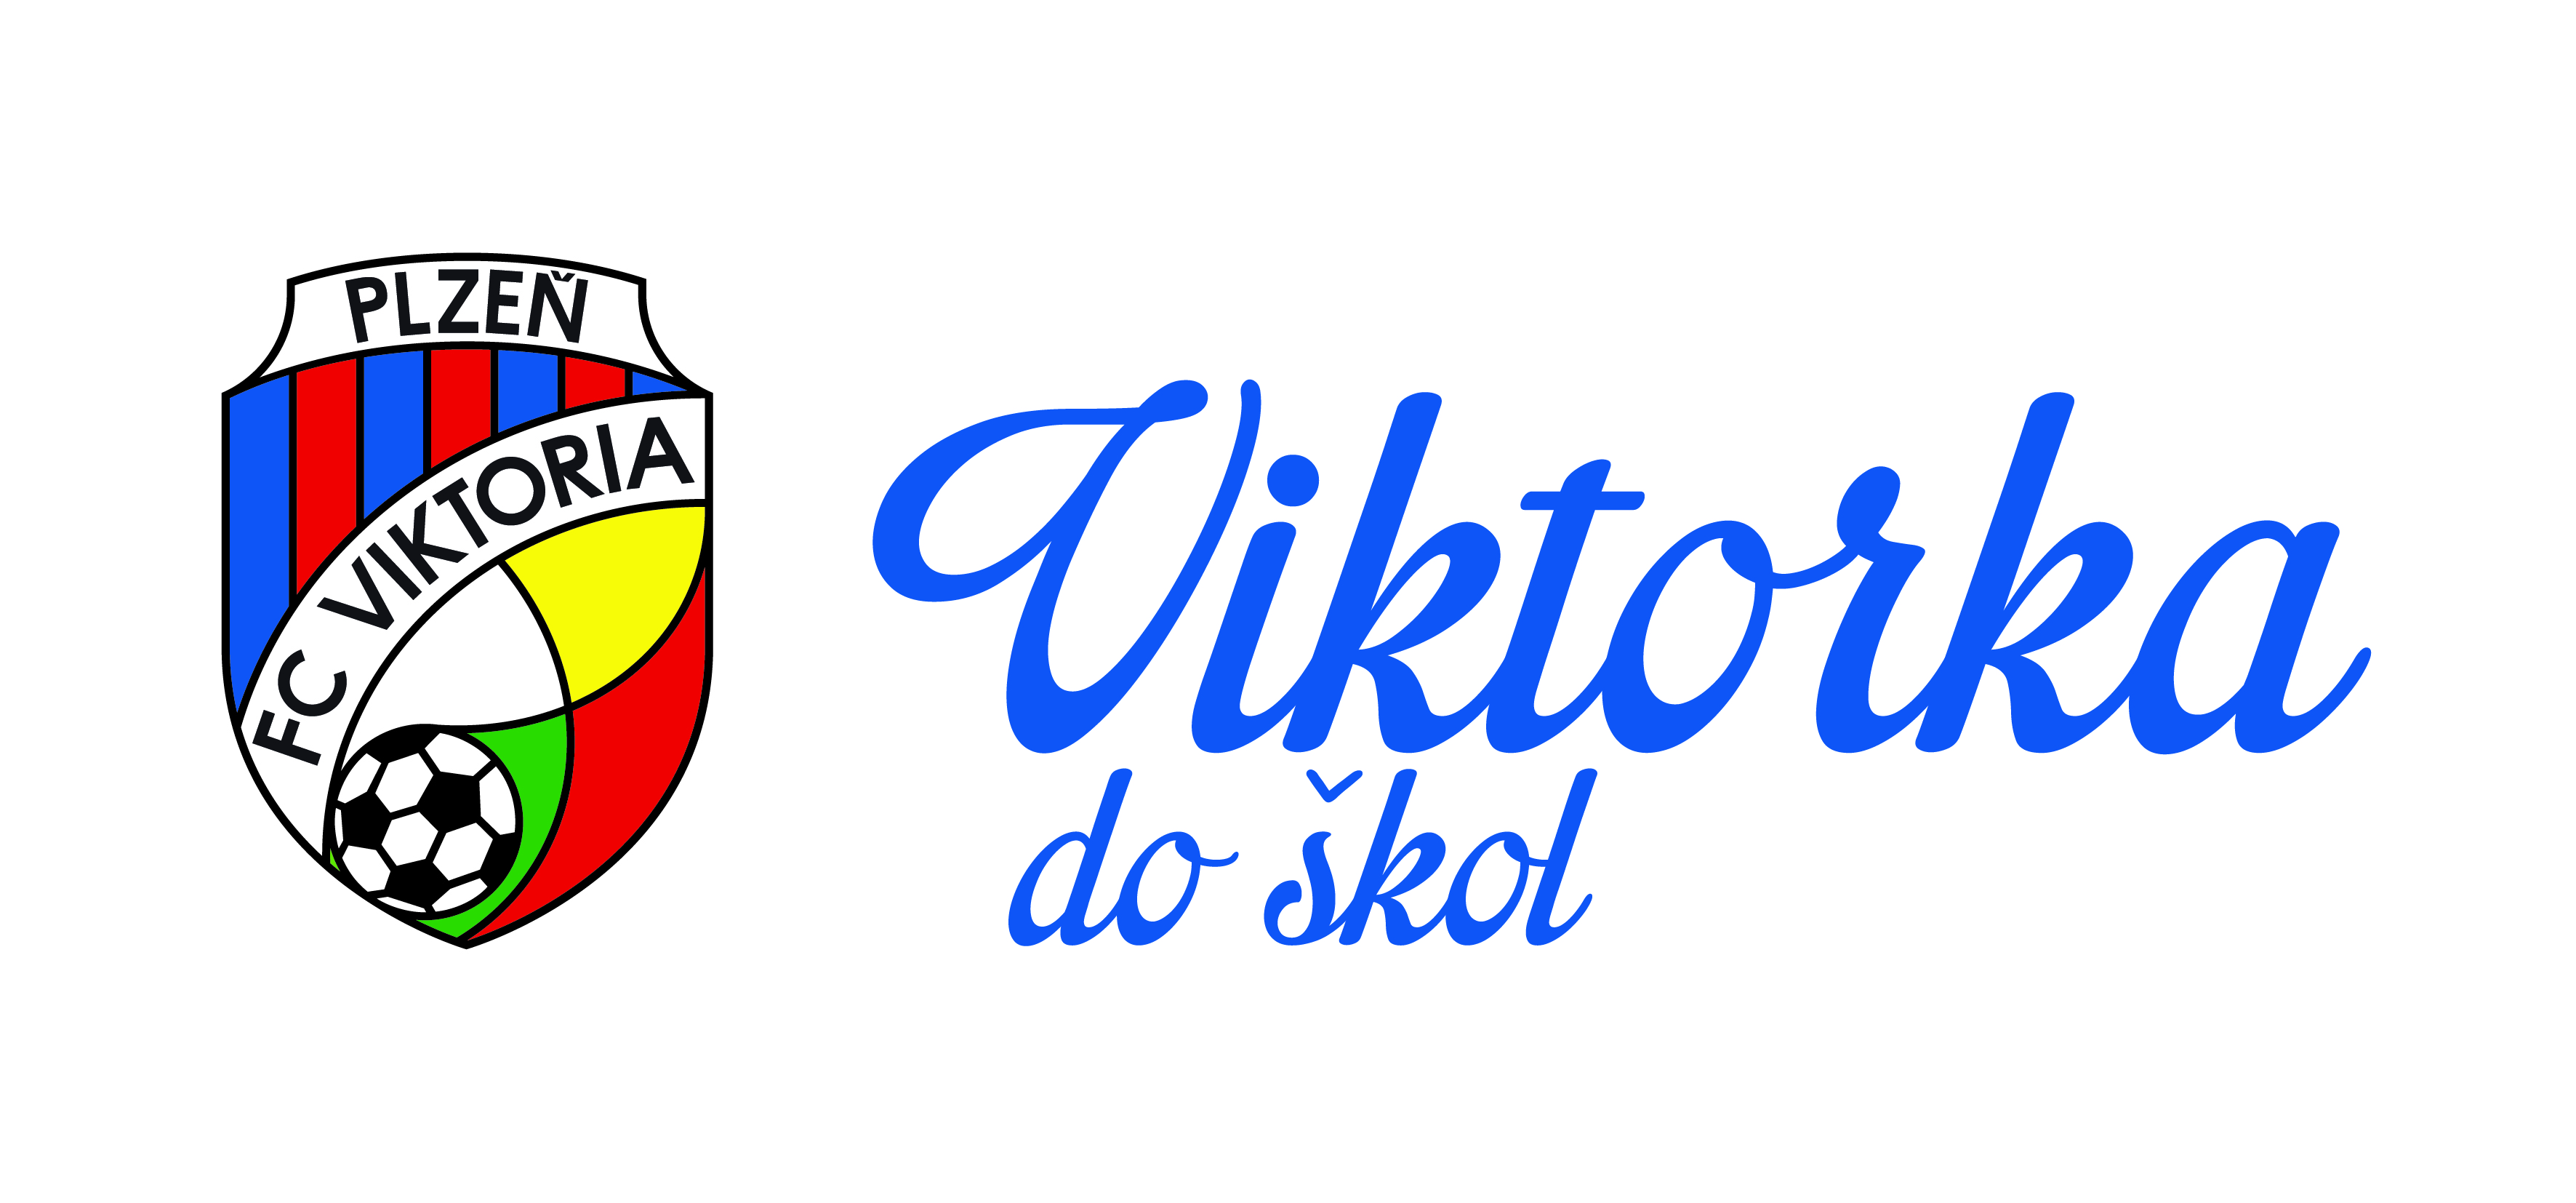 Viktorka do škol